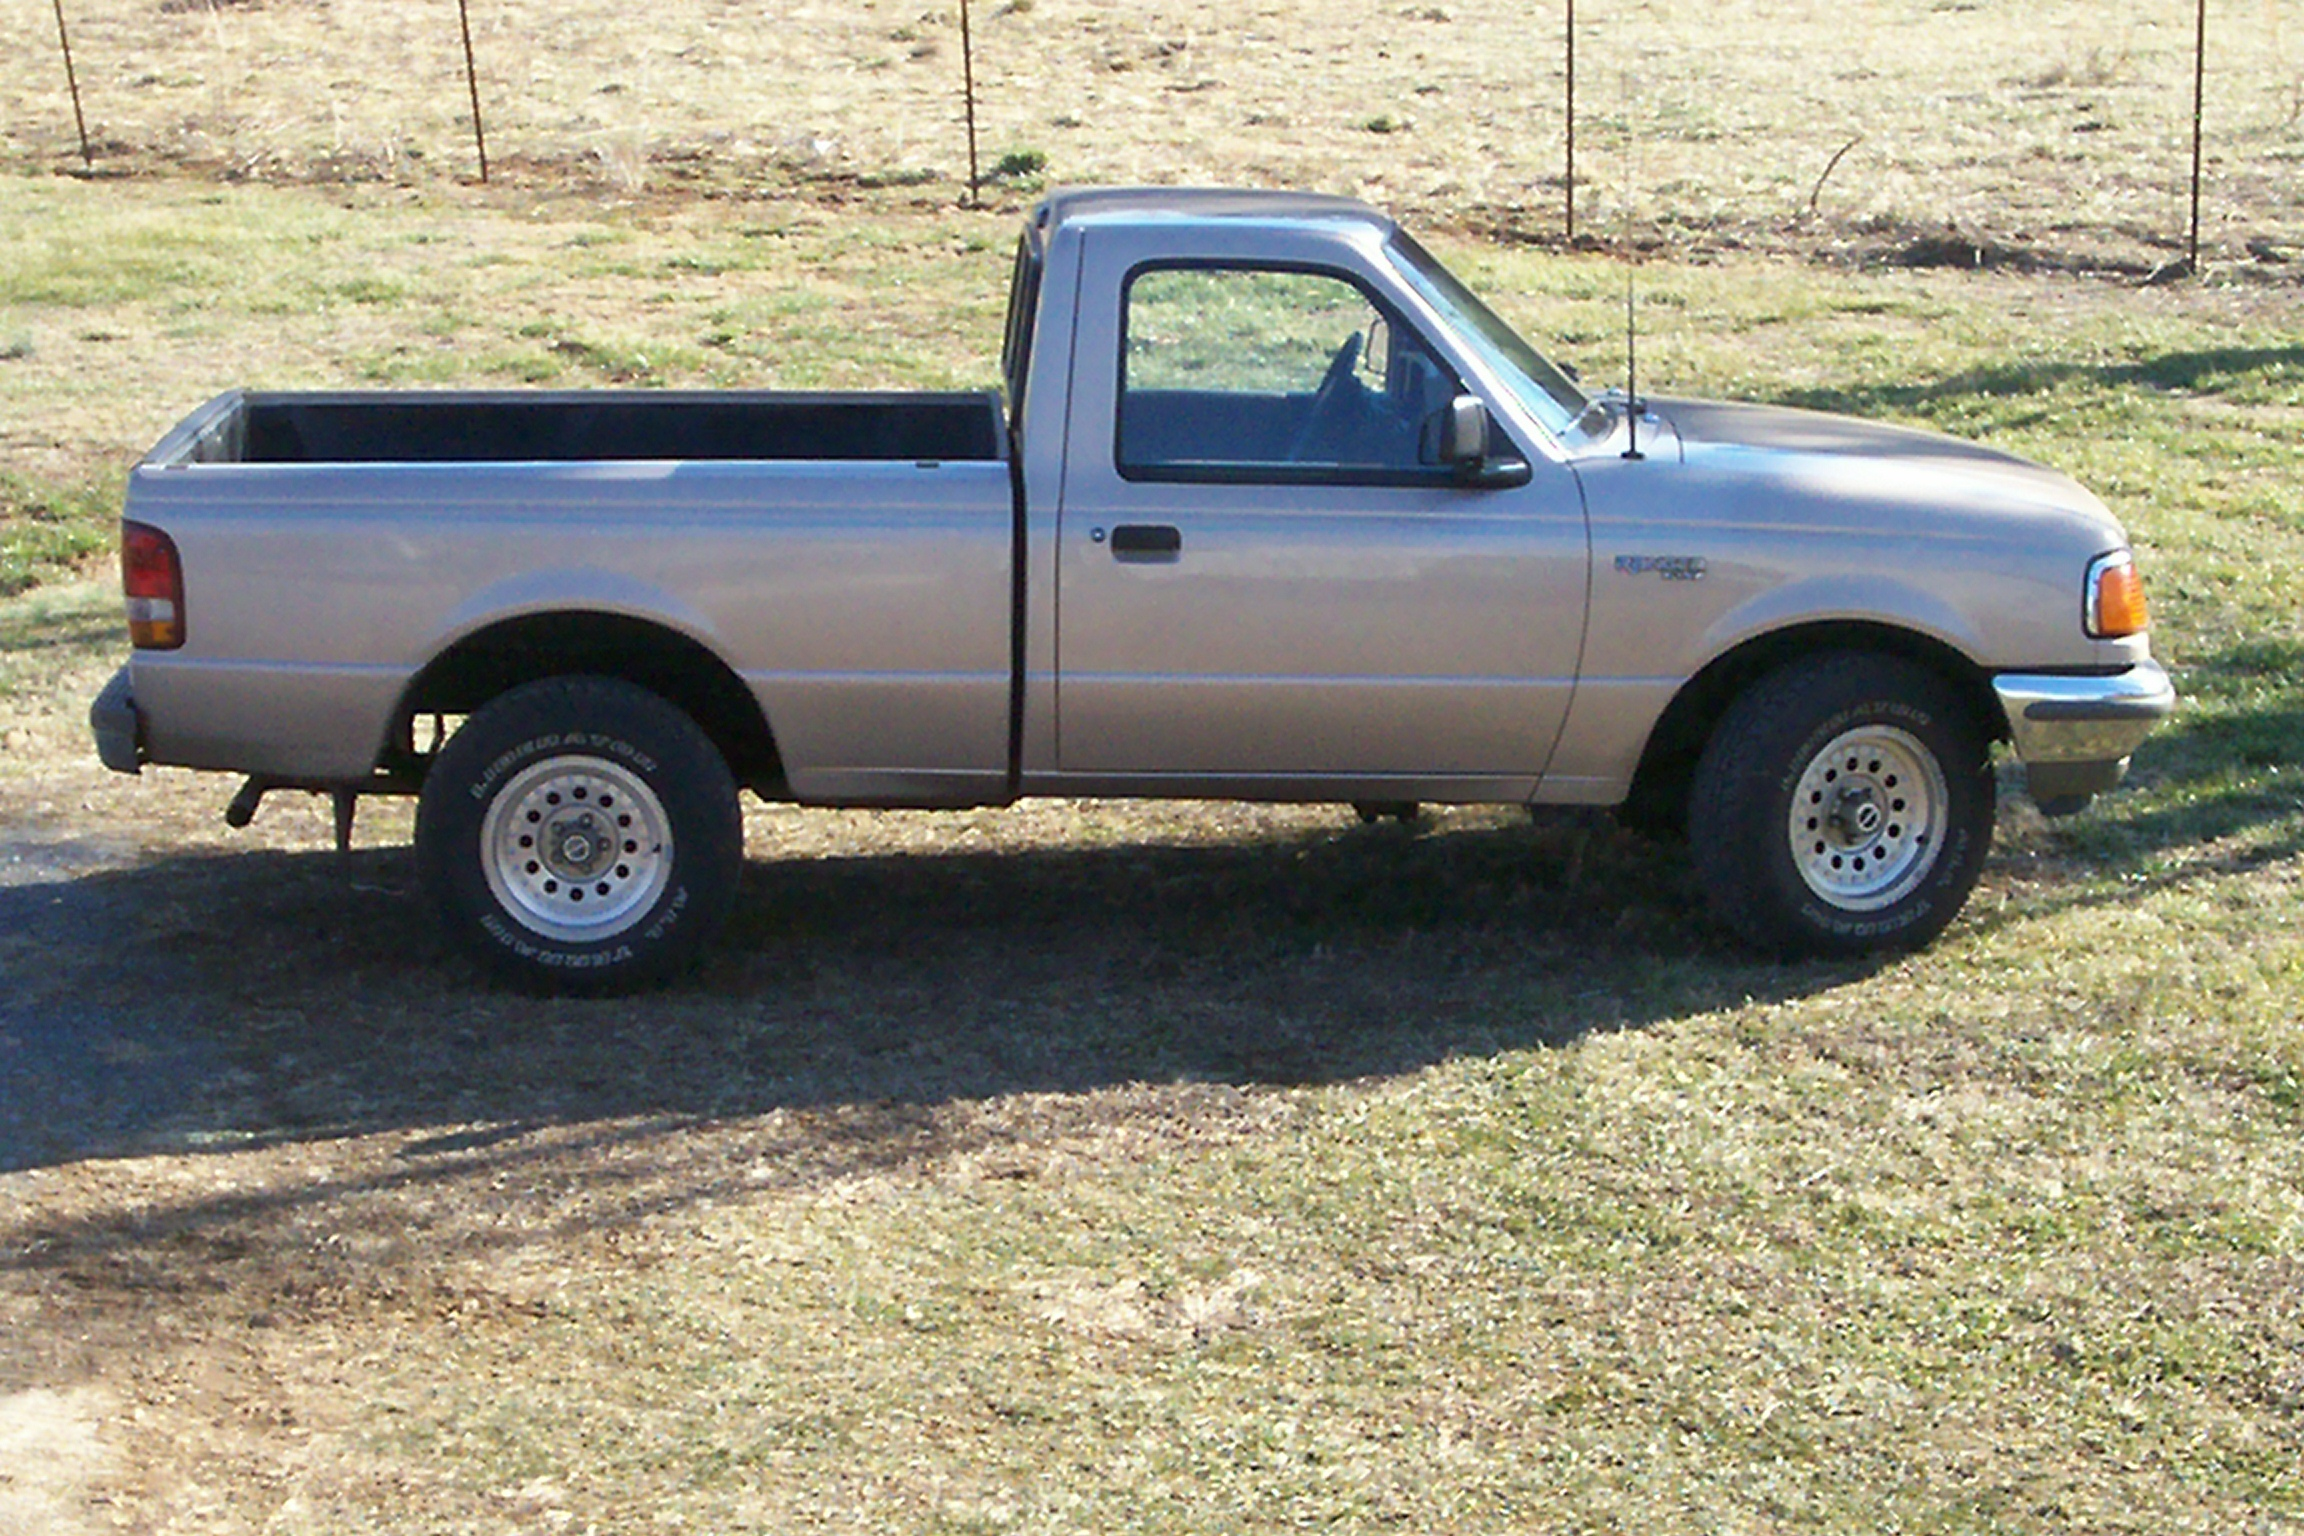 dixie_boysles 1994 Ford Ranger Regular Cab 8871543